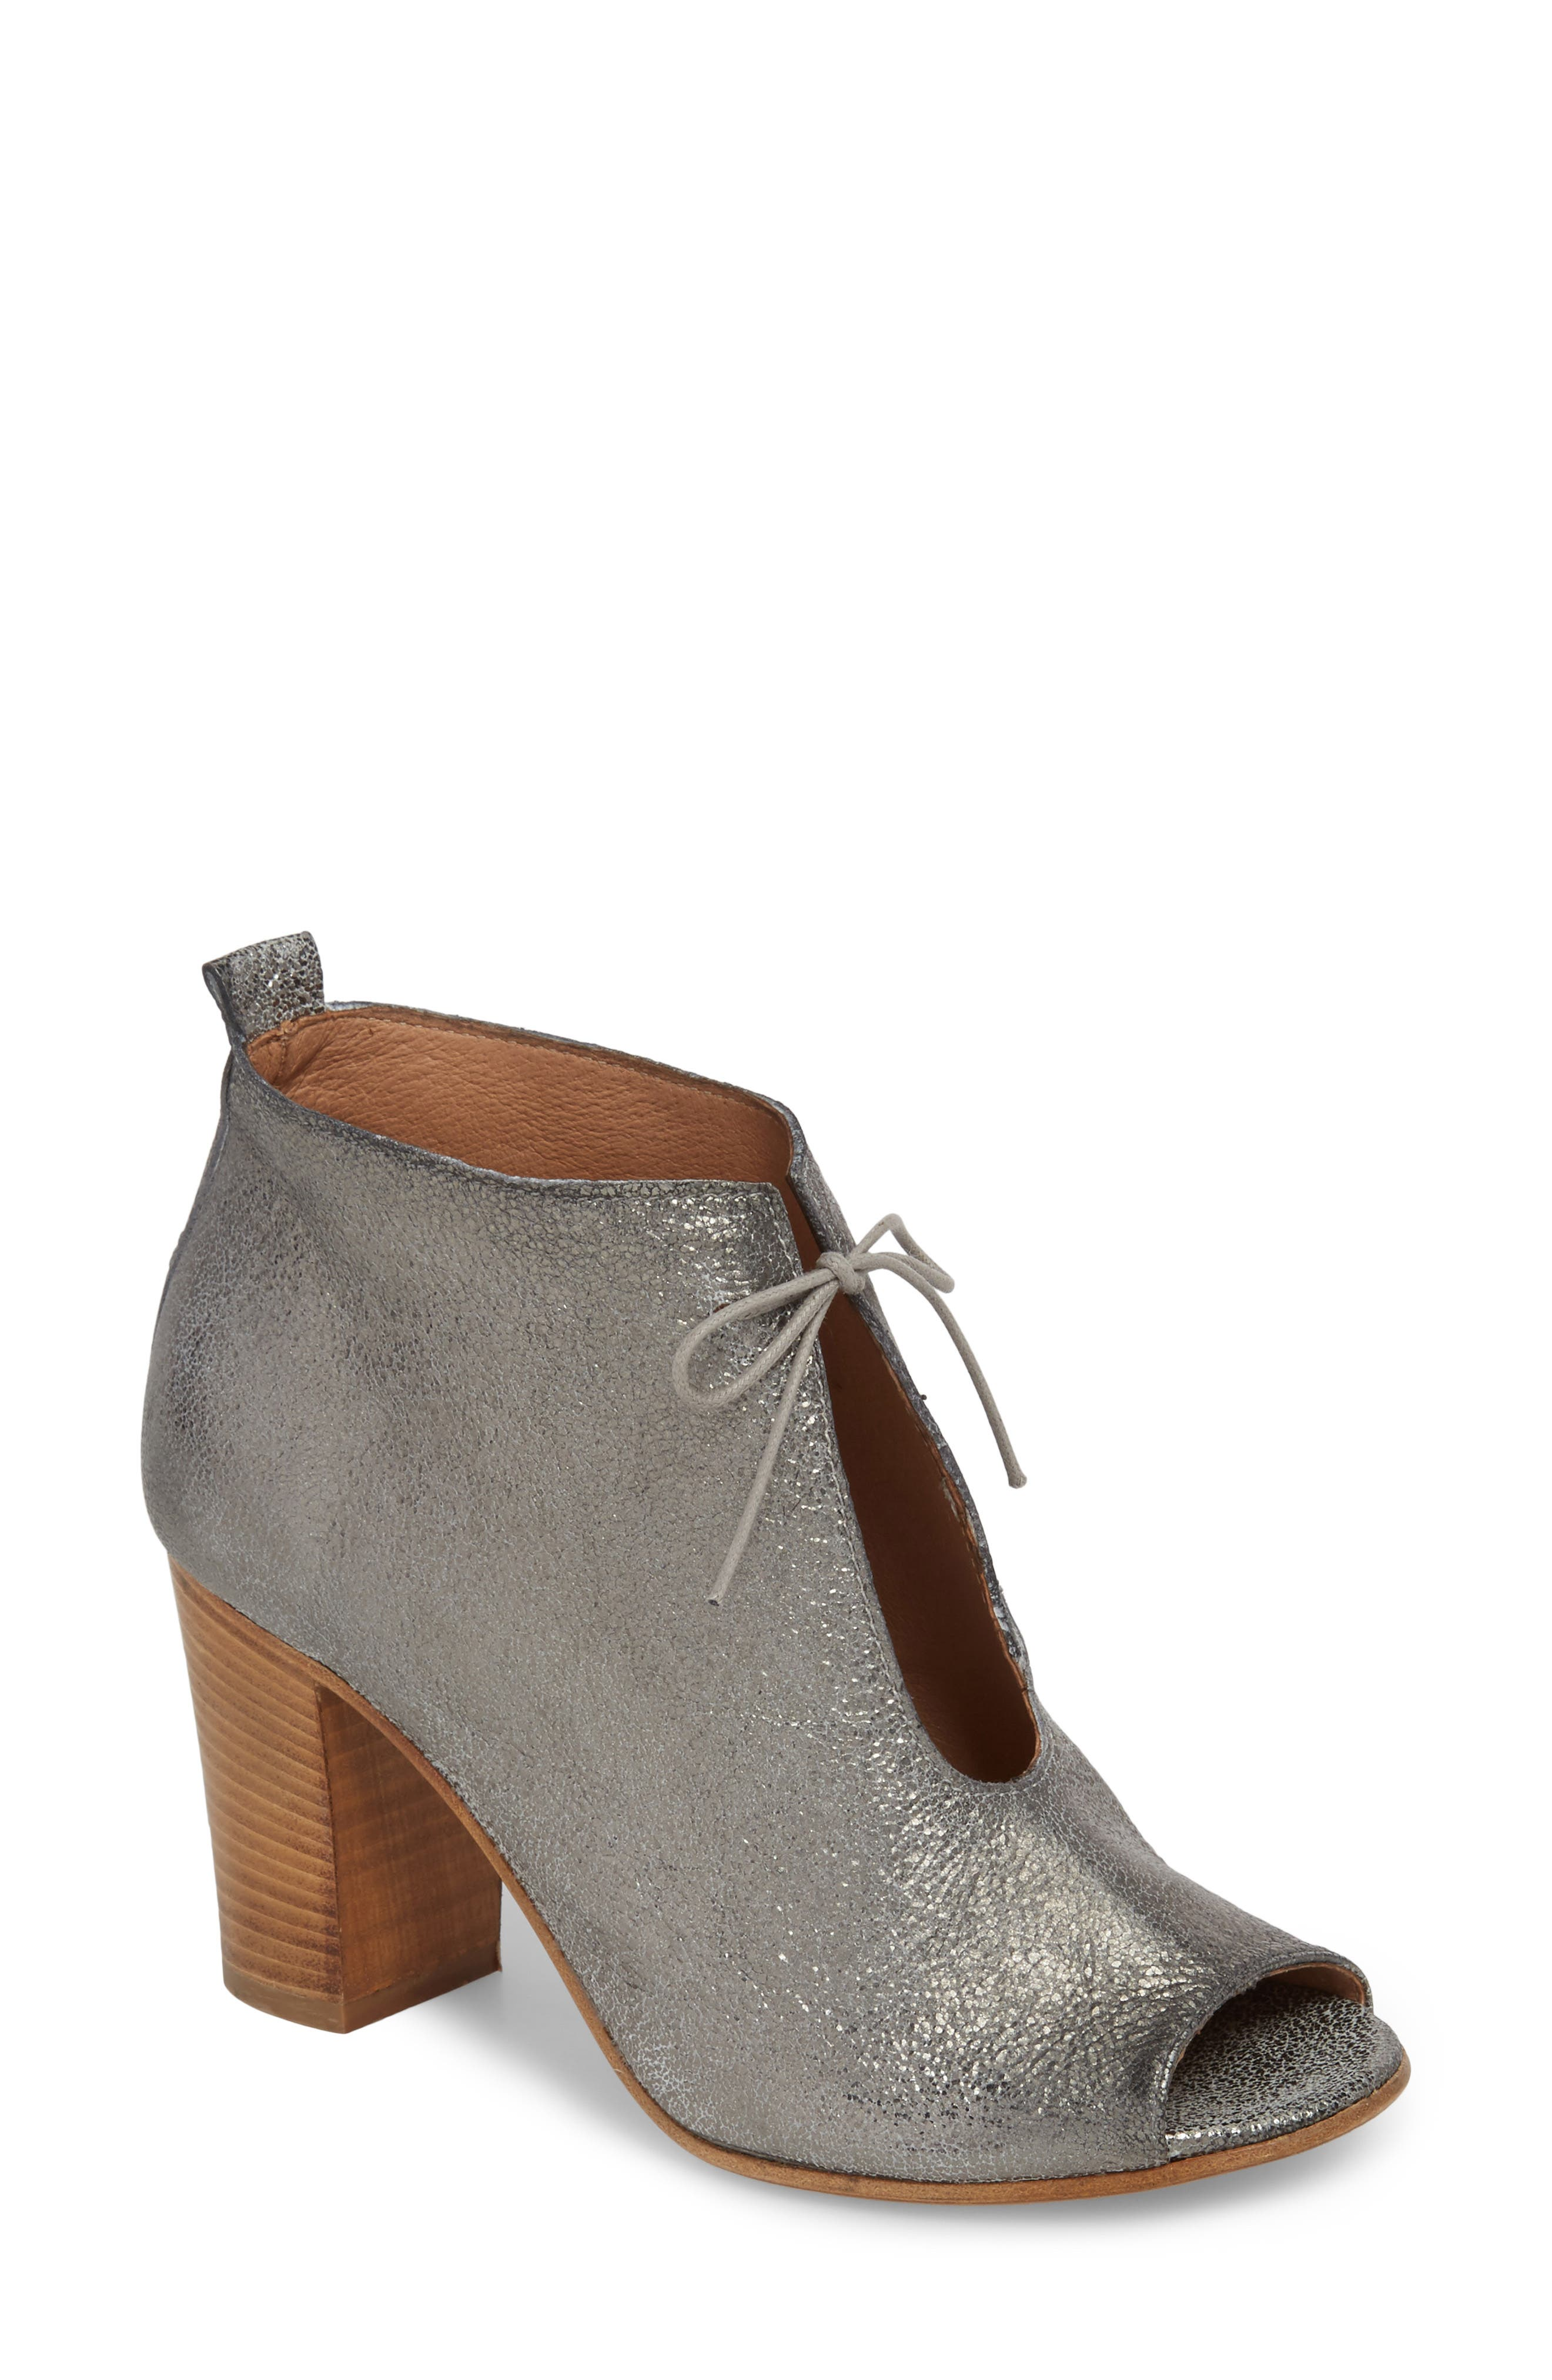 Borrini Open Toe Bootie,                             Main thumbnail 1, color,                             Pewter Leather